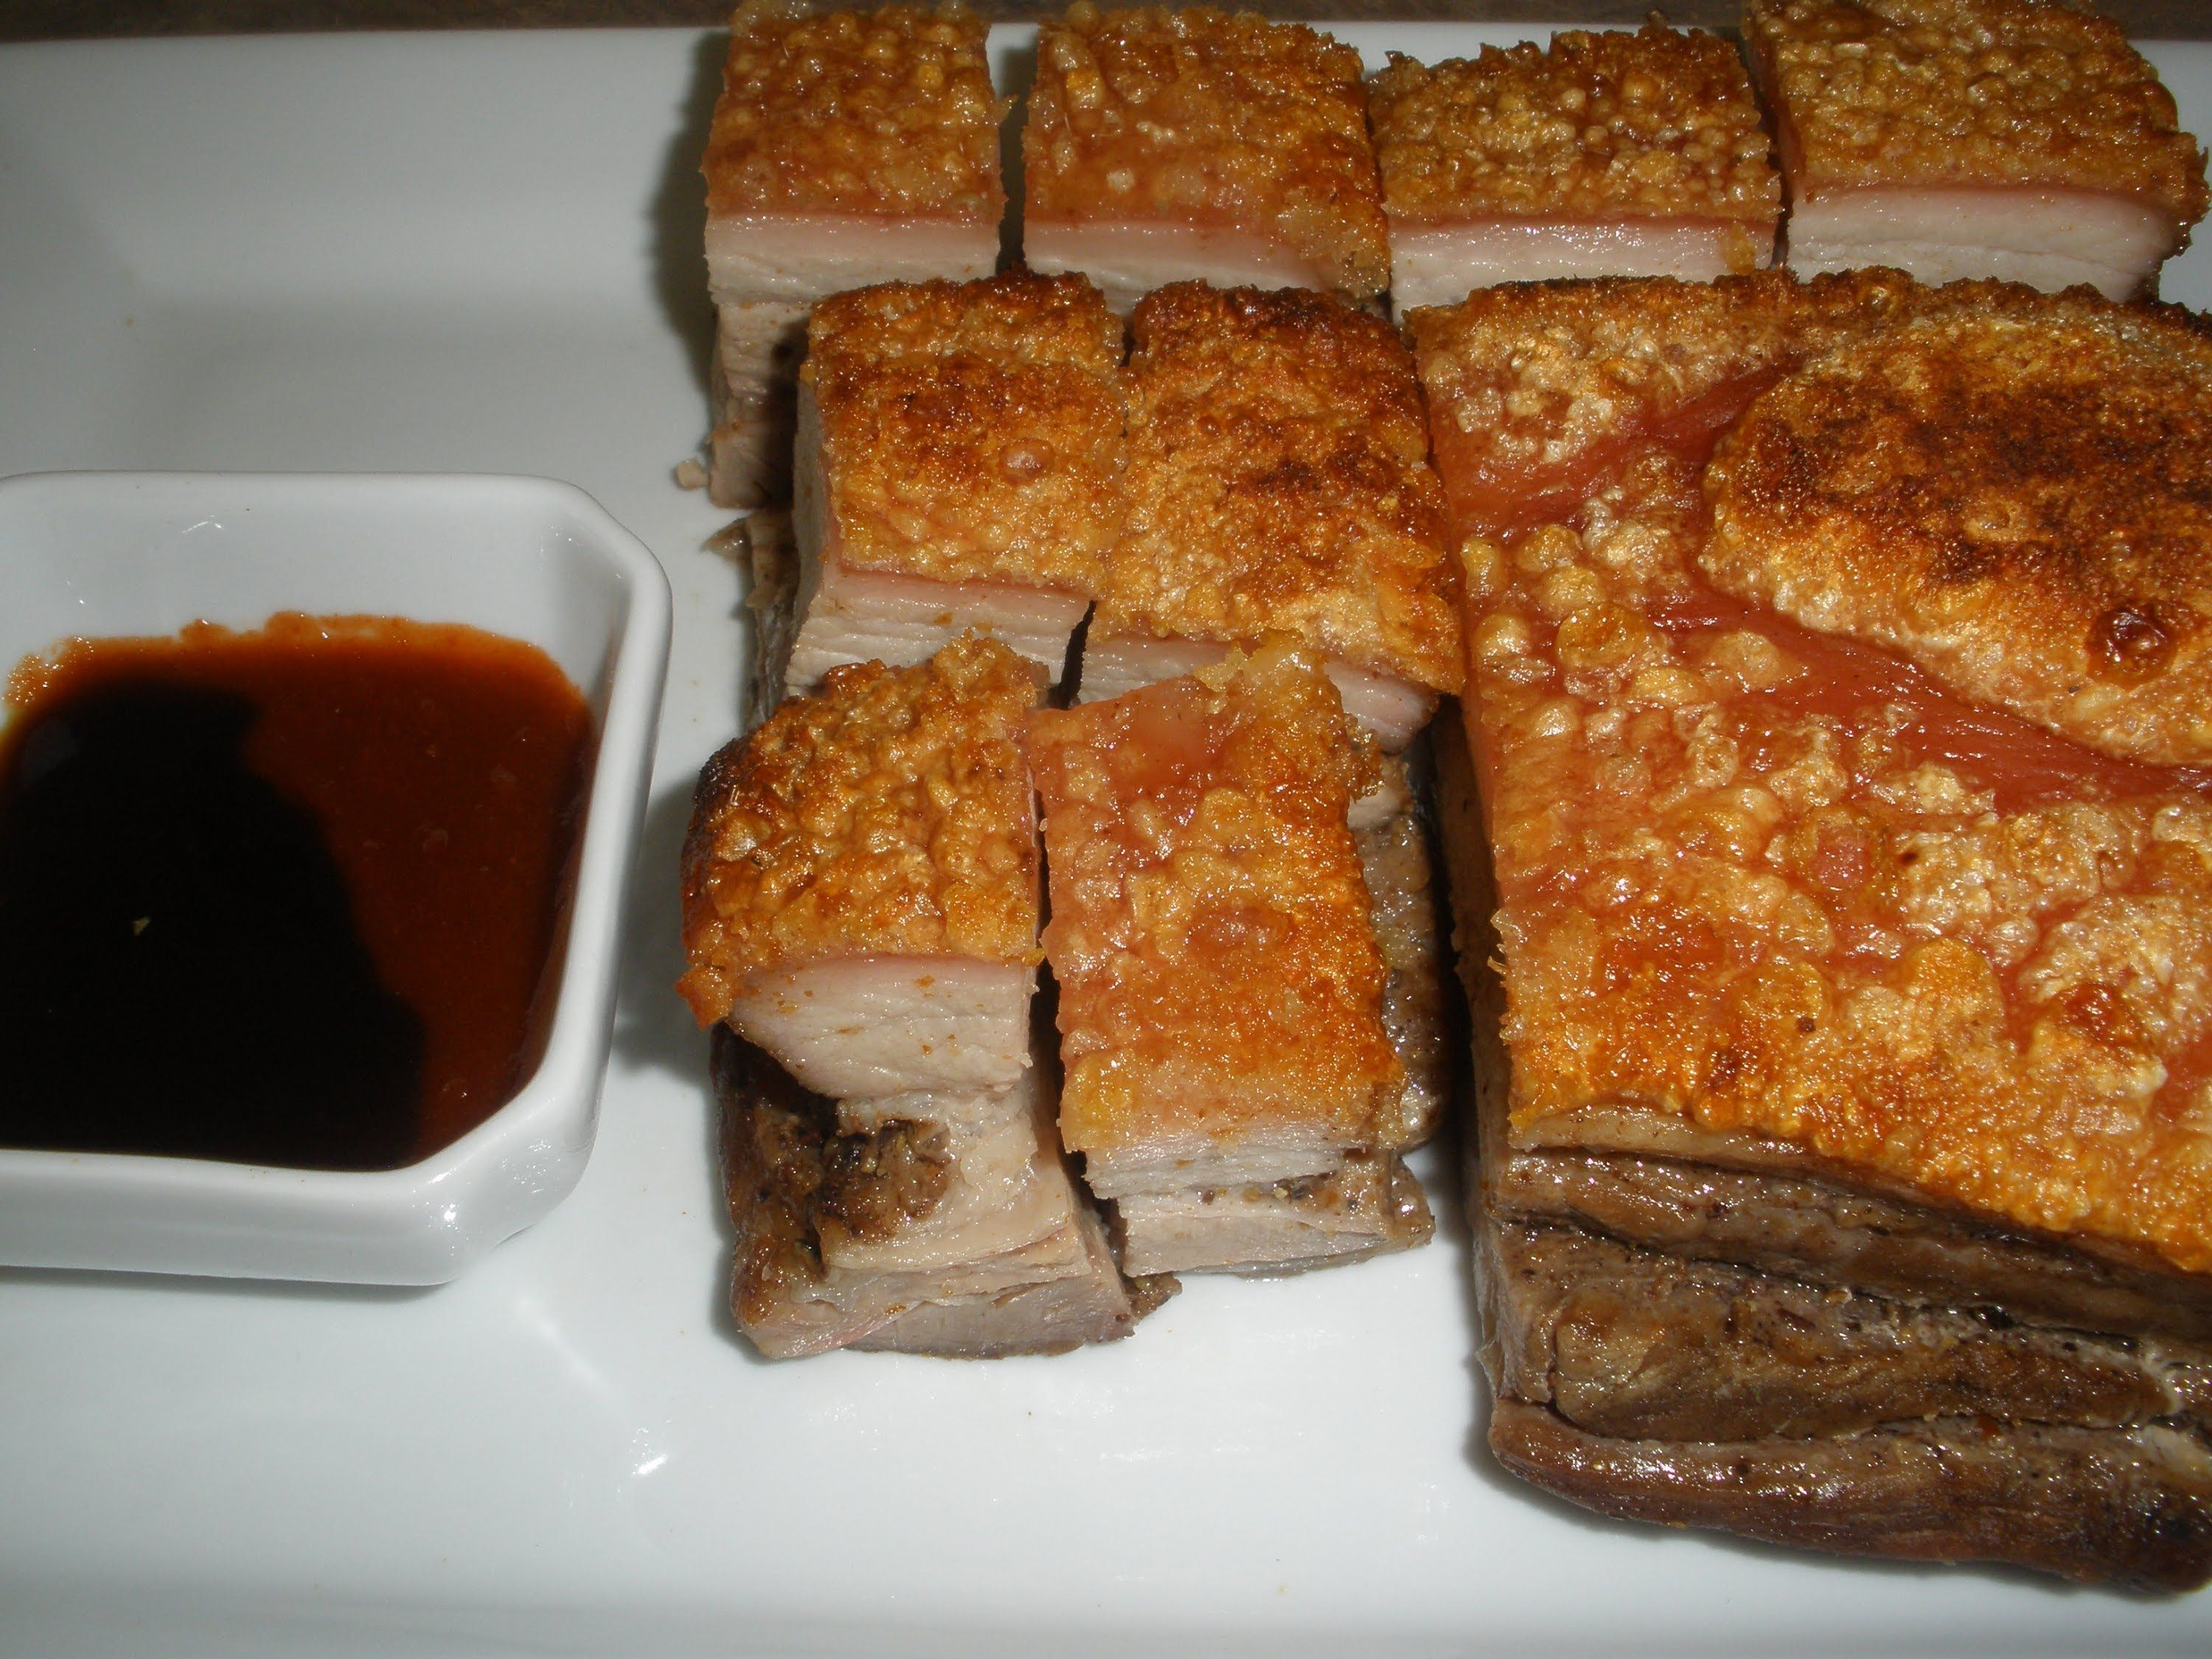 Roasted pork belly recipe just chinese food pinterest roasted pork belly recipe forumfinder Image collections